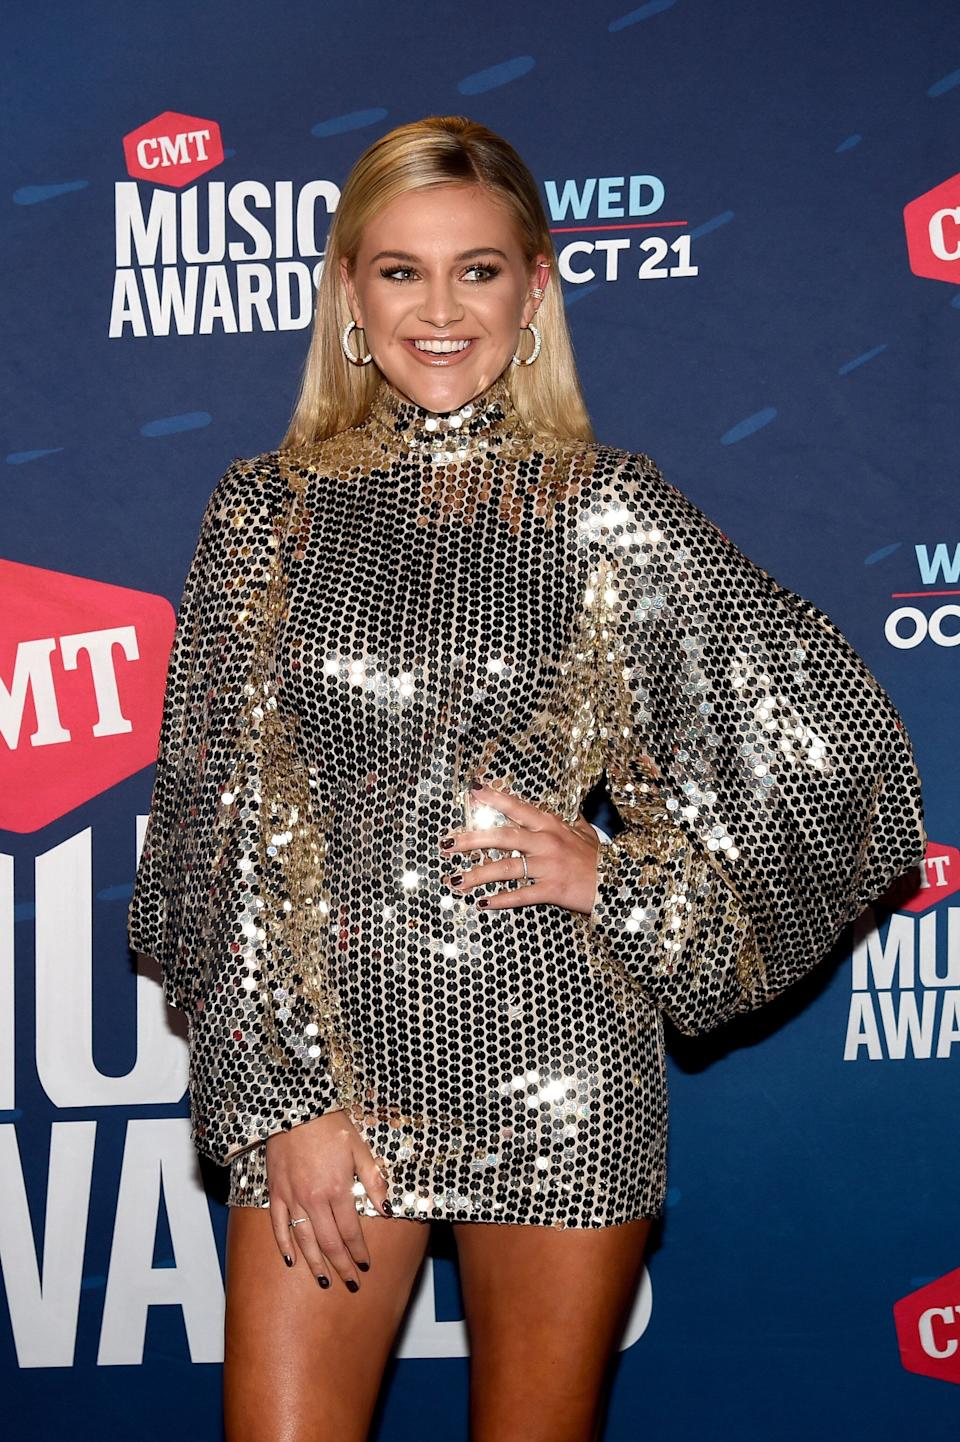 (Photo: Photo by Kevin Winter/CMT2020/Getty Images for CMT)